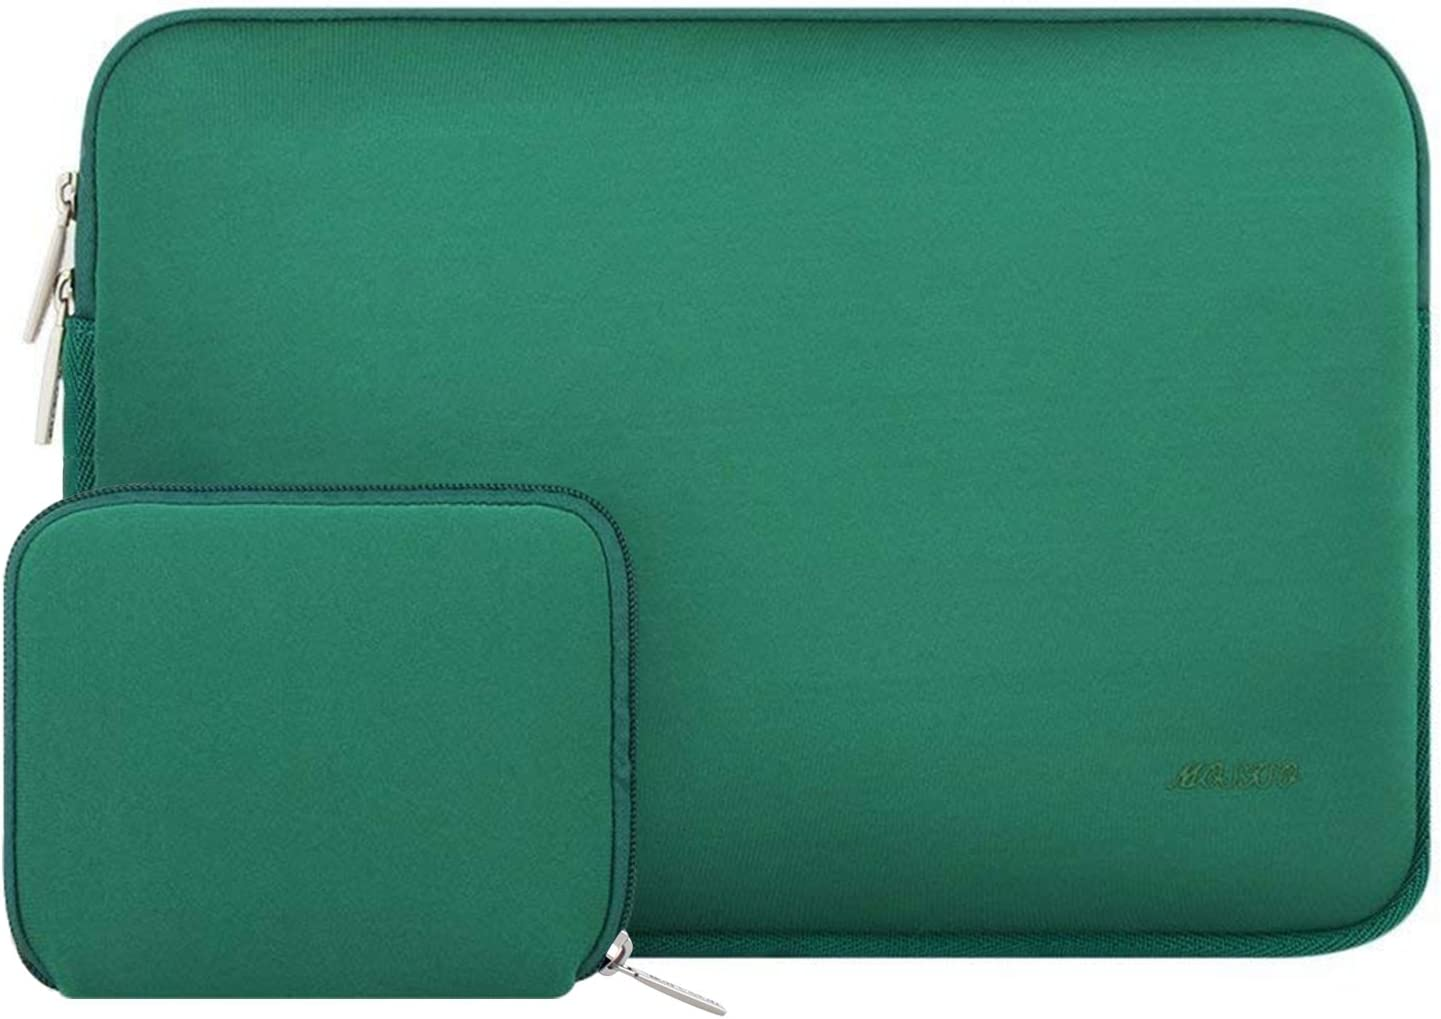 MOSISO Laptop Sleeve Compatible with 2019 MacBook Pro 16 inch Touch Bar A2141, 15-15.6 inch MacBook Pro Retina 2012-2015, Notebook, Water Repellent Neoprene Bag with Small Case, Peacock Green